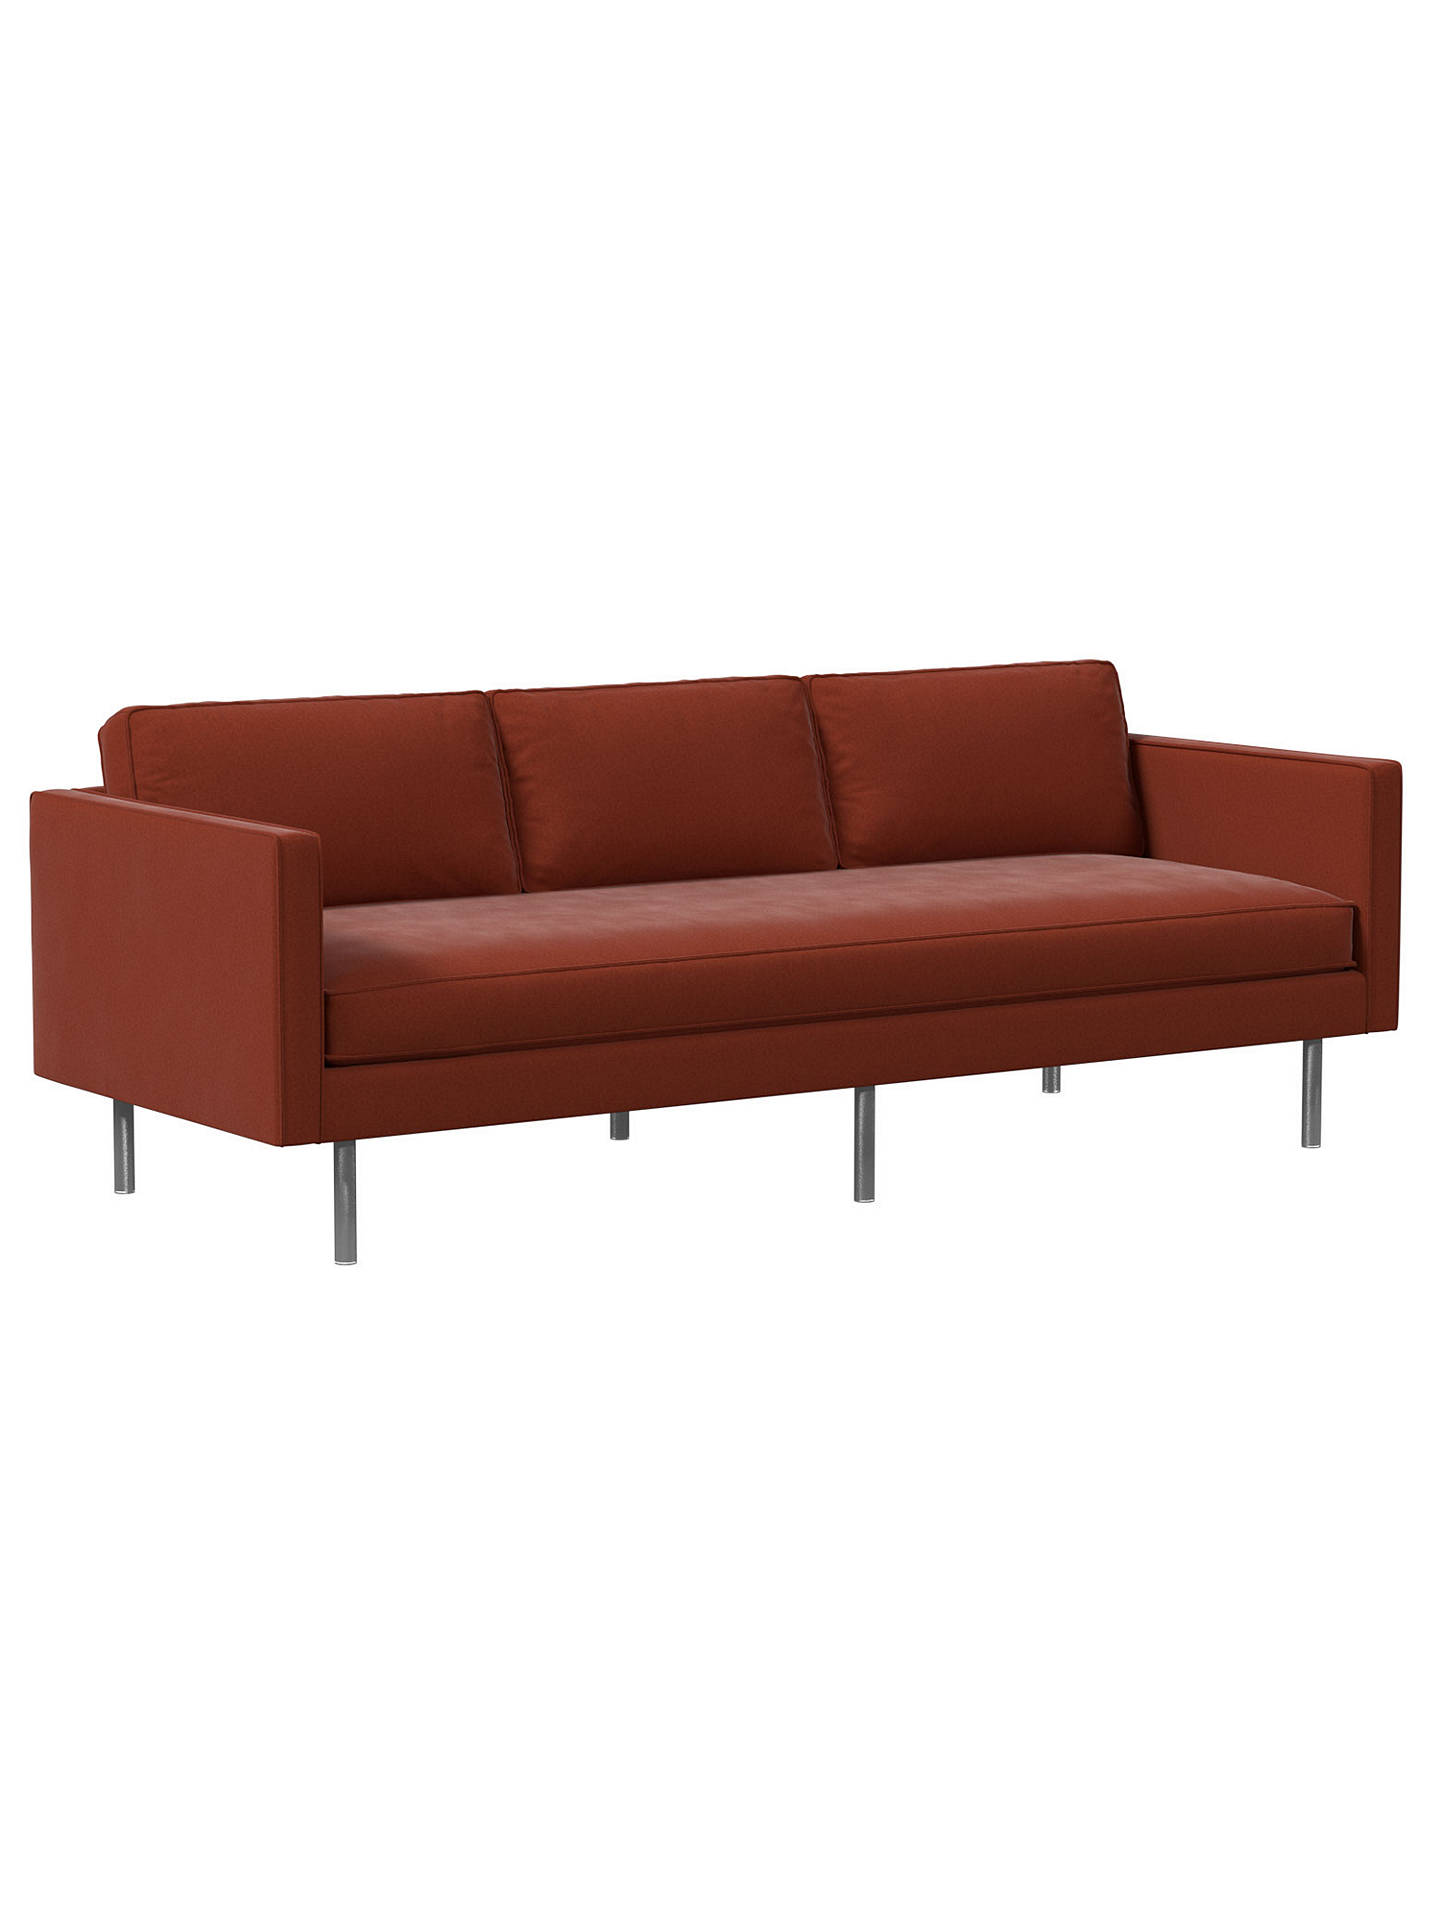 Buy west elm Axel Large 3 Seater Sofa, Velvet Rust Online at johnlewis.com